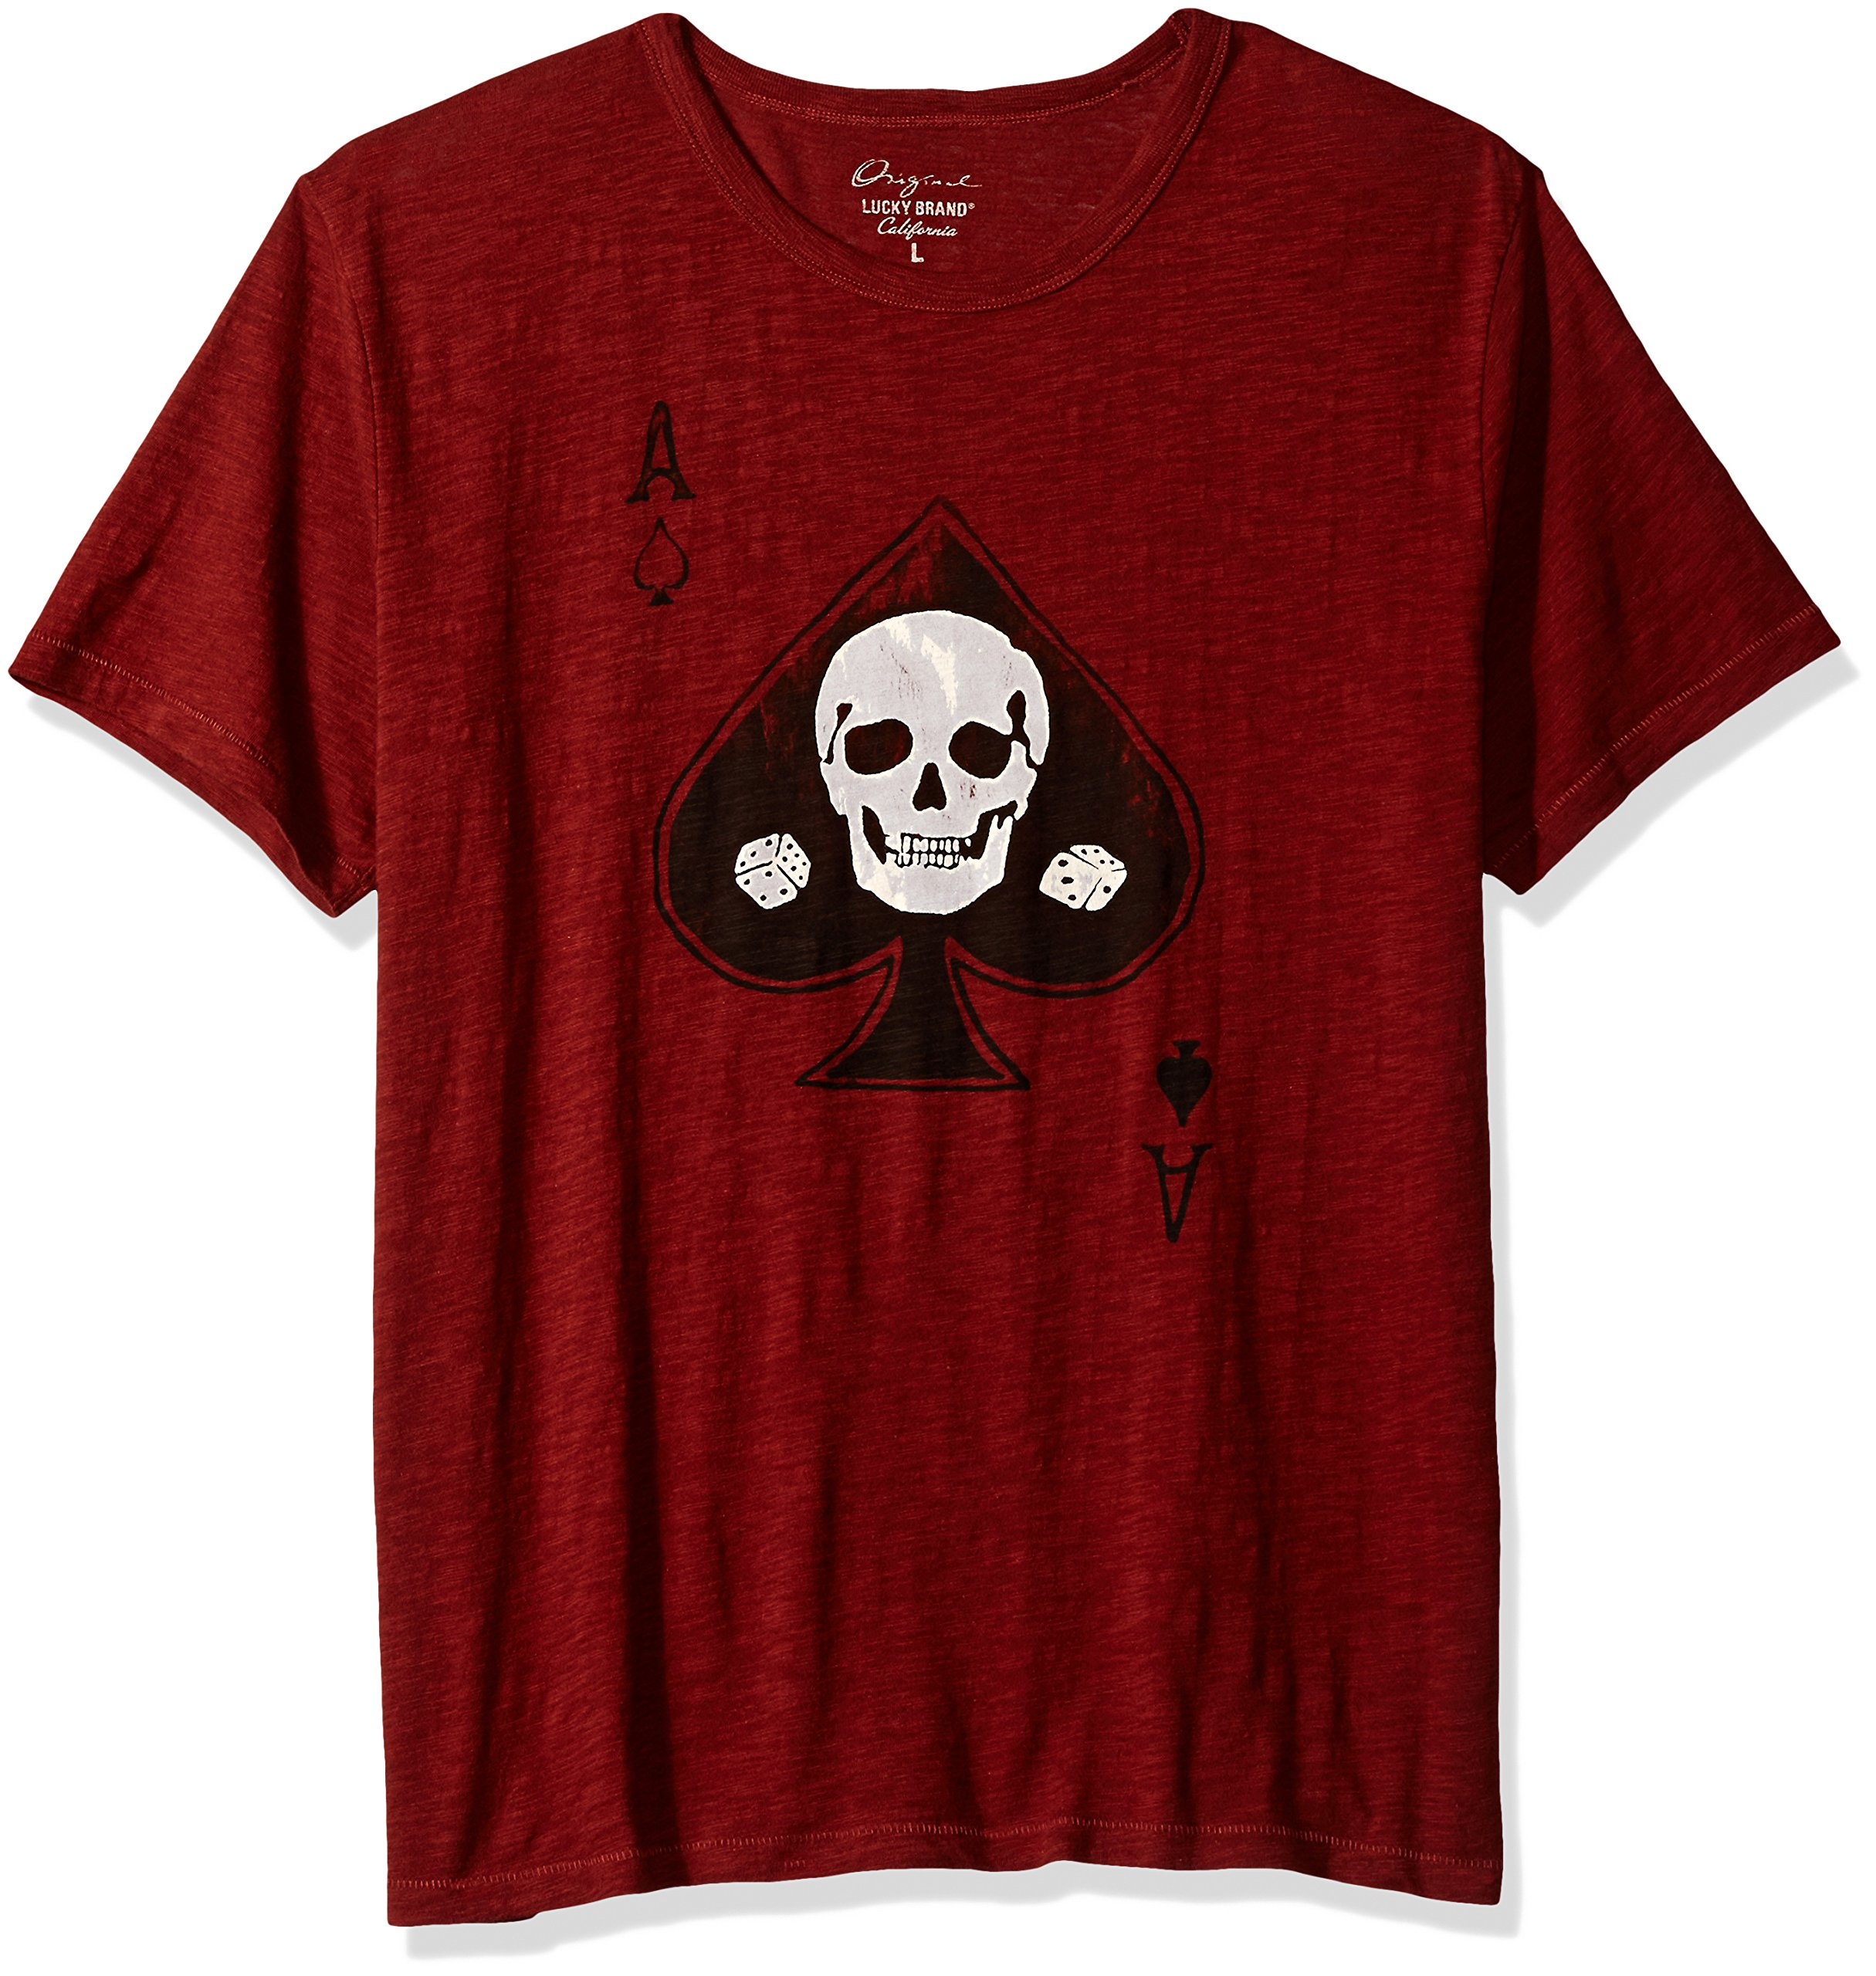 Lucky Brand Men's Skull Ace Graphic Tee, Fired Brick, Medium